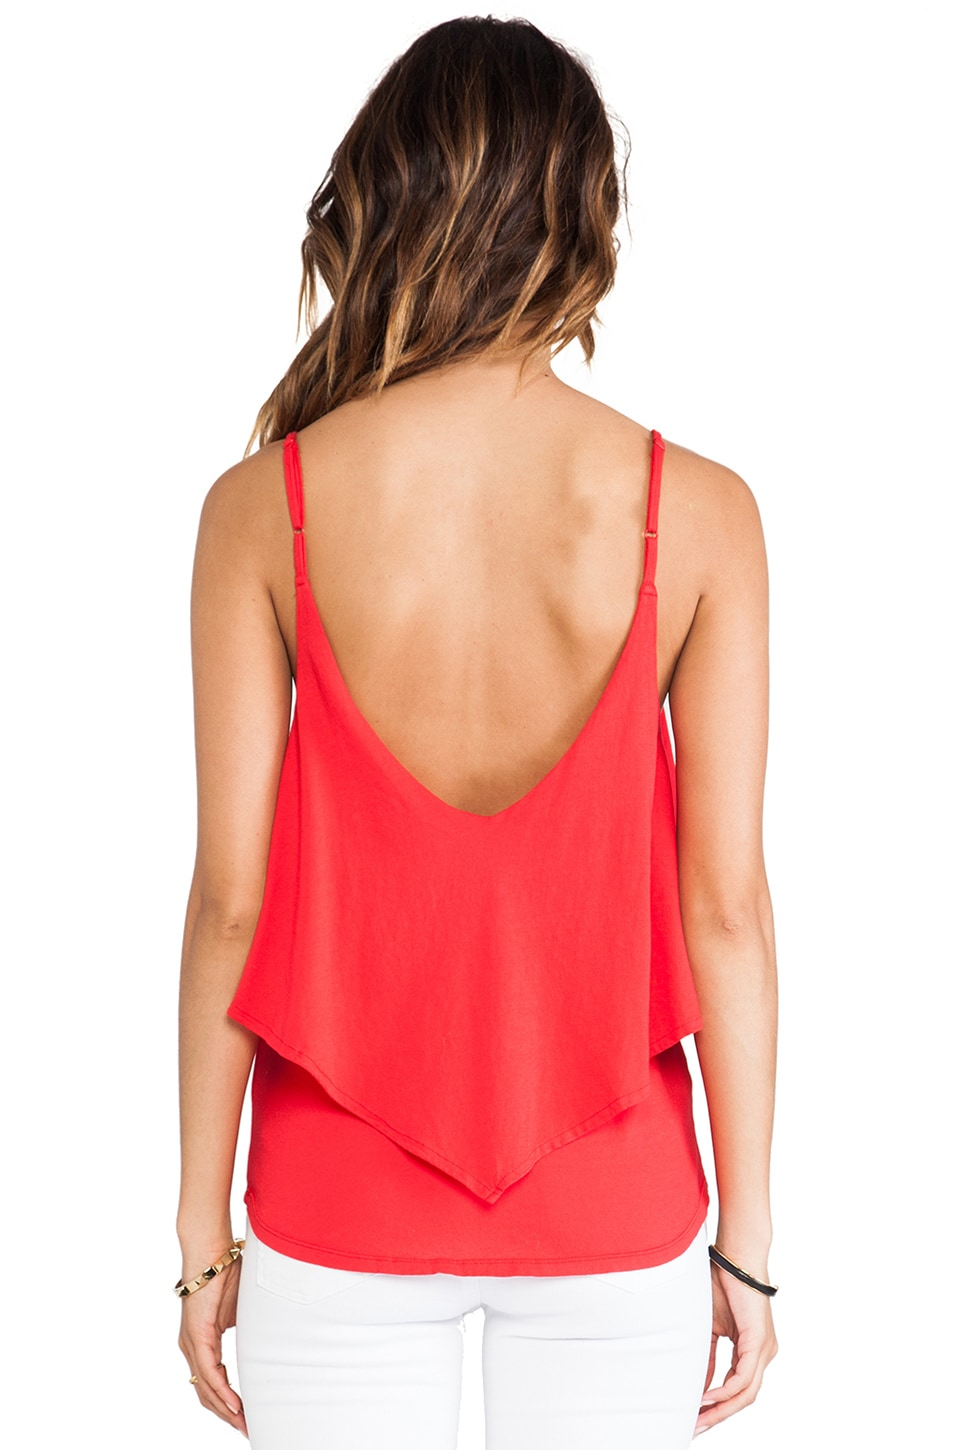 Bobi Light Weight Jersey Ruffle Tank in Bali